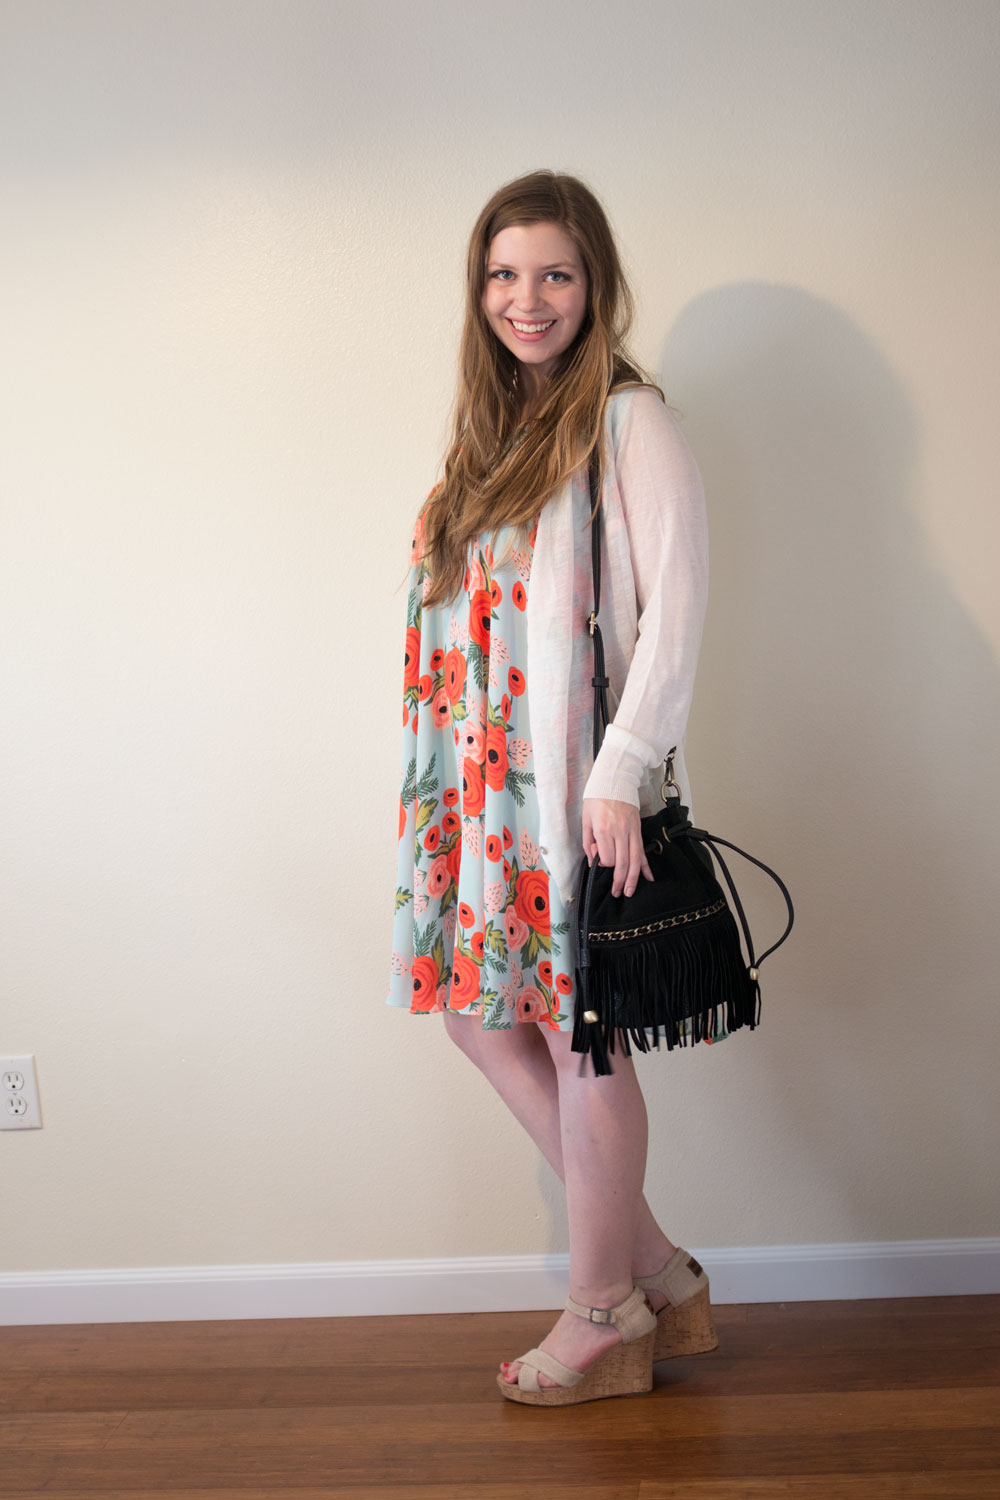 DailyLook Elite August 2015: Beck Lightweight Cardigan, Sinatra Faux Suede Fringe Bucket Bag, Rifle Paper Co. x Paper Crown Fluttered Blooms Swing Dress // hellorigby seattle fashion blog